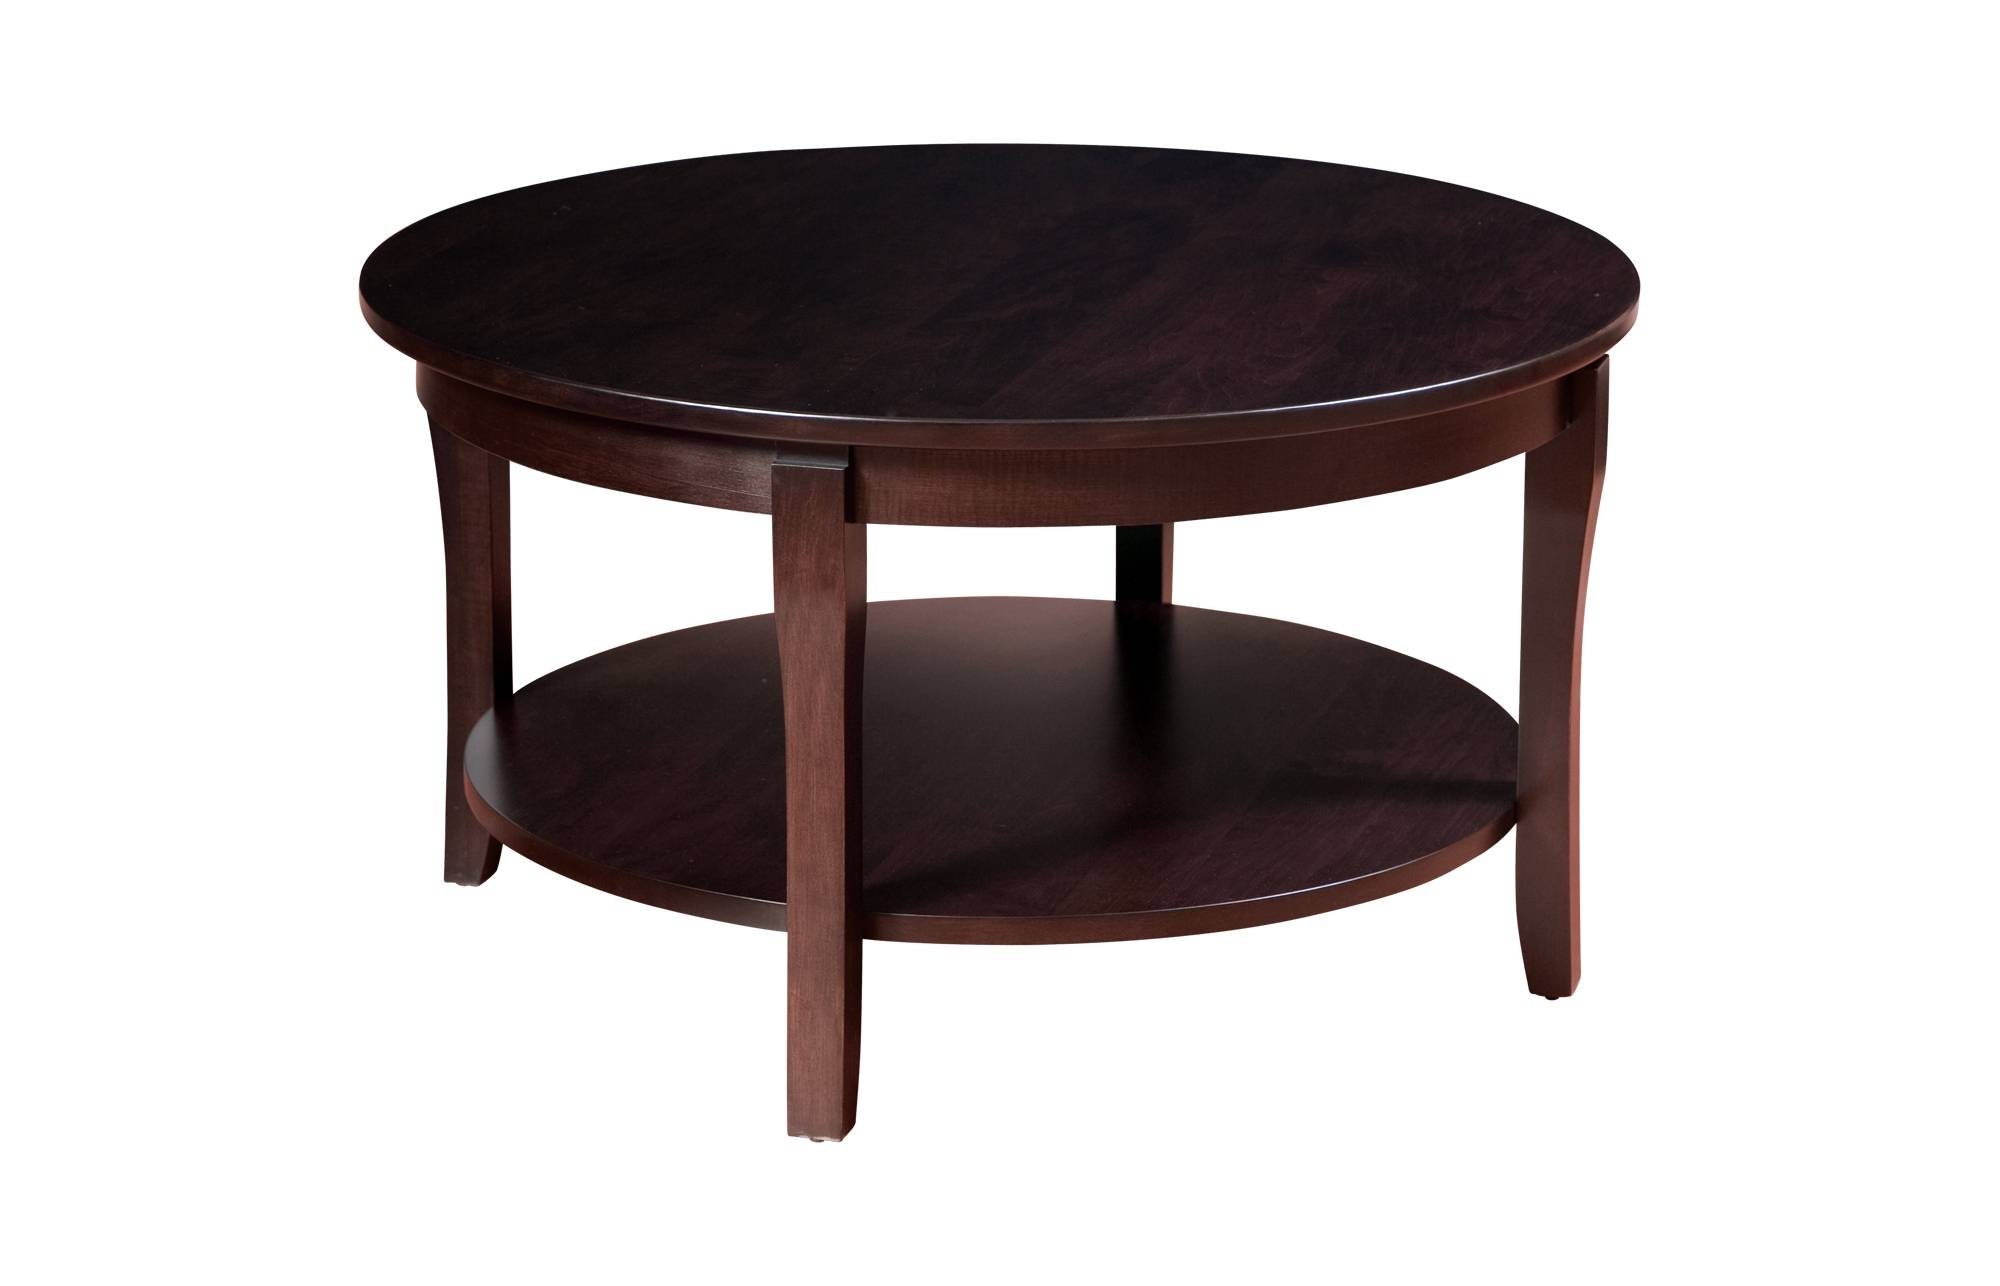 Dark Wood Round Coffee Table - Starrkingschool intended for Dark Wooden Coffee Tables (Image 21 of 30)